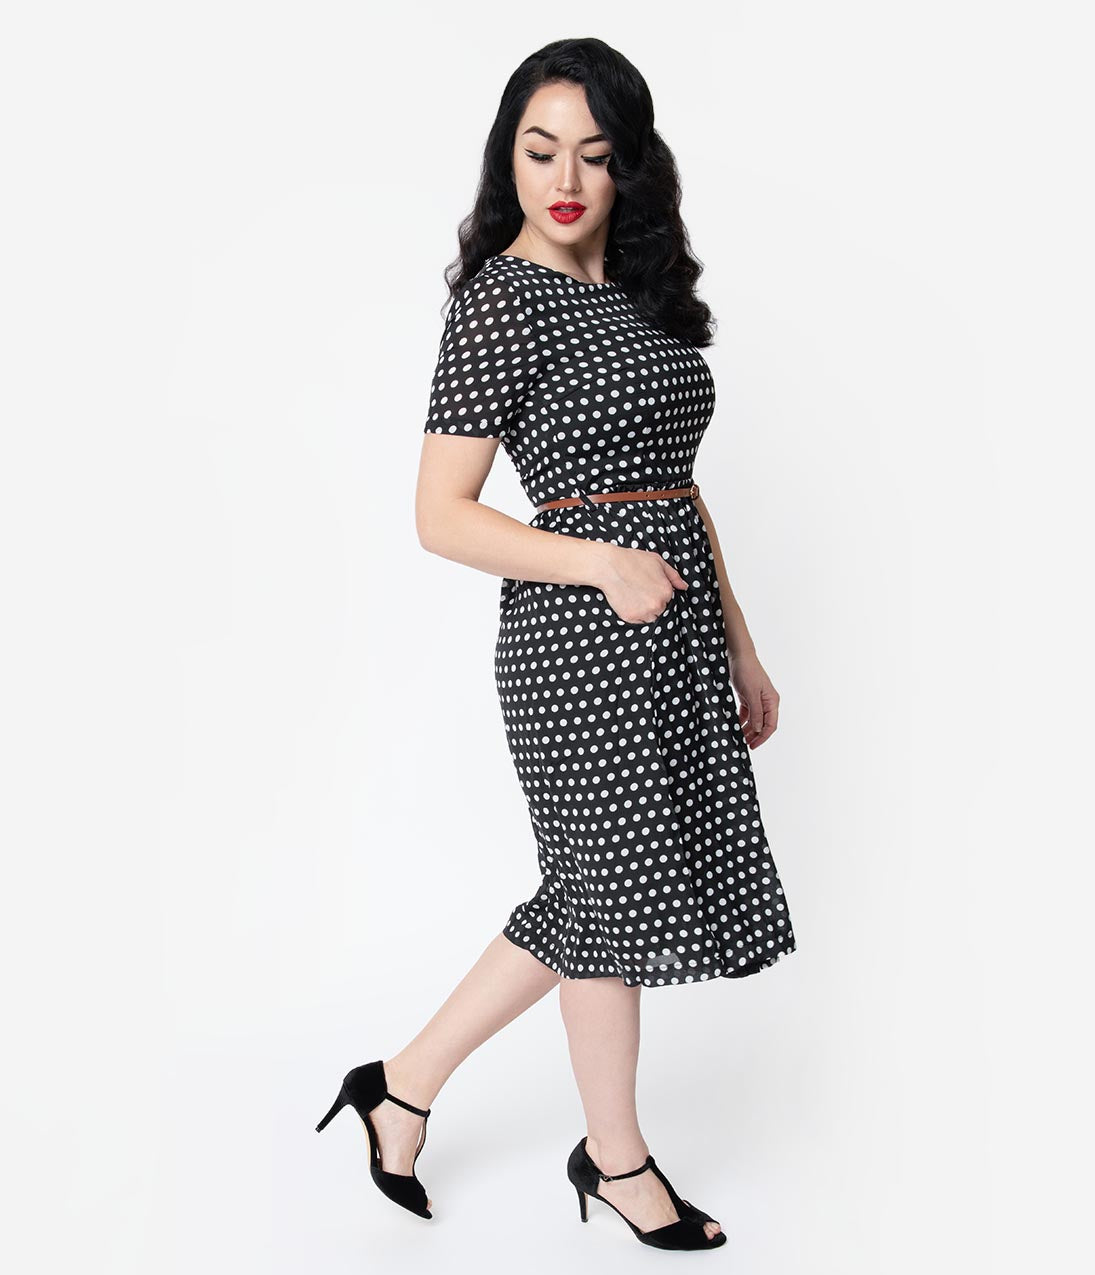 1940s Dresses | 40s Dress, Swing Dress 1940S Style Black  White Polka Dot Crepe Short Sleeve Midi Dress $44.00 AT vintagedancer.com